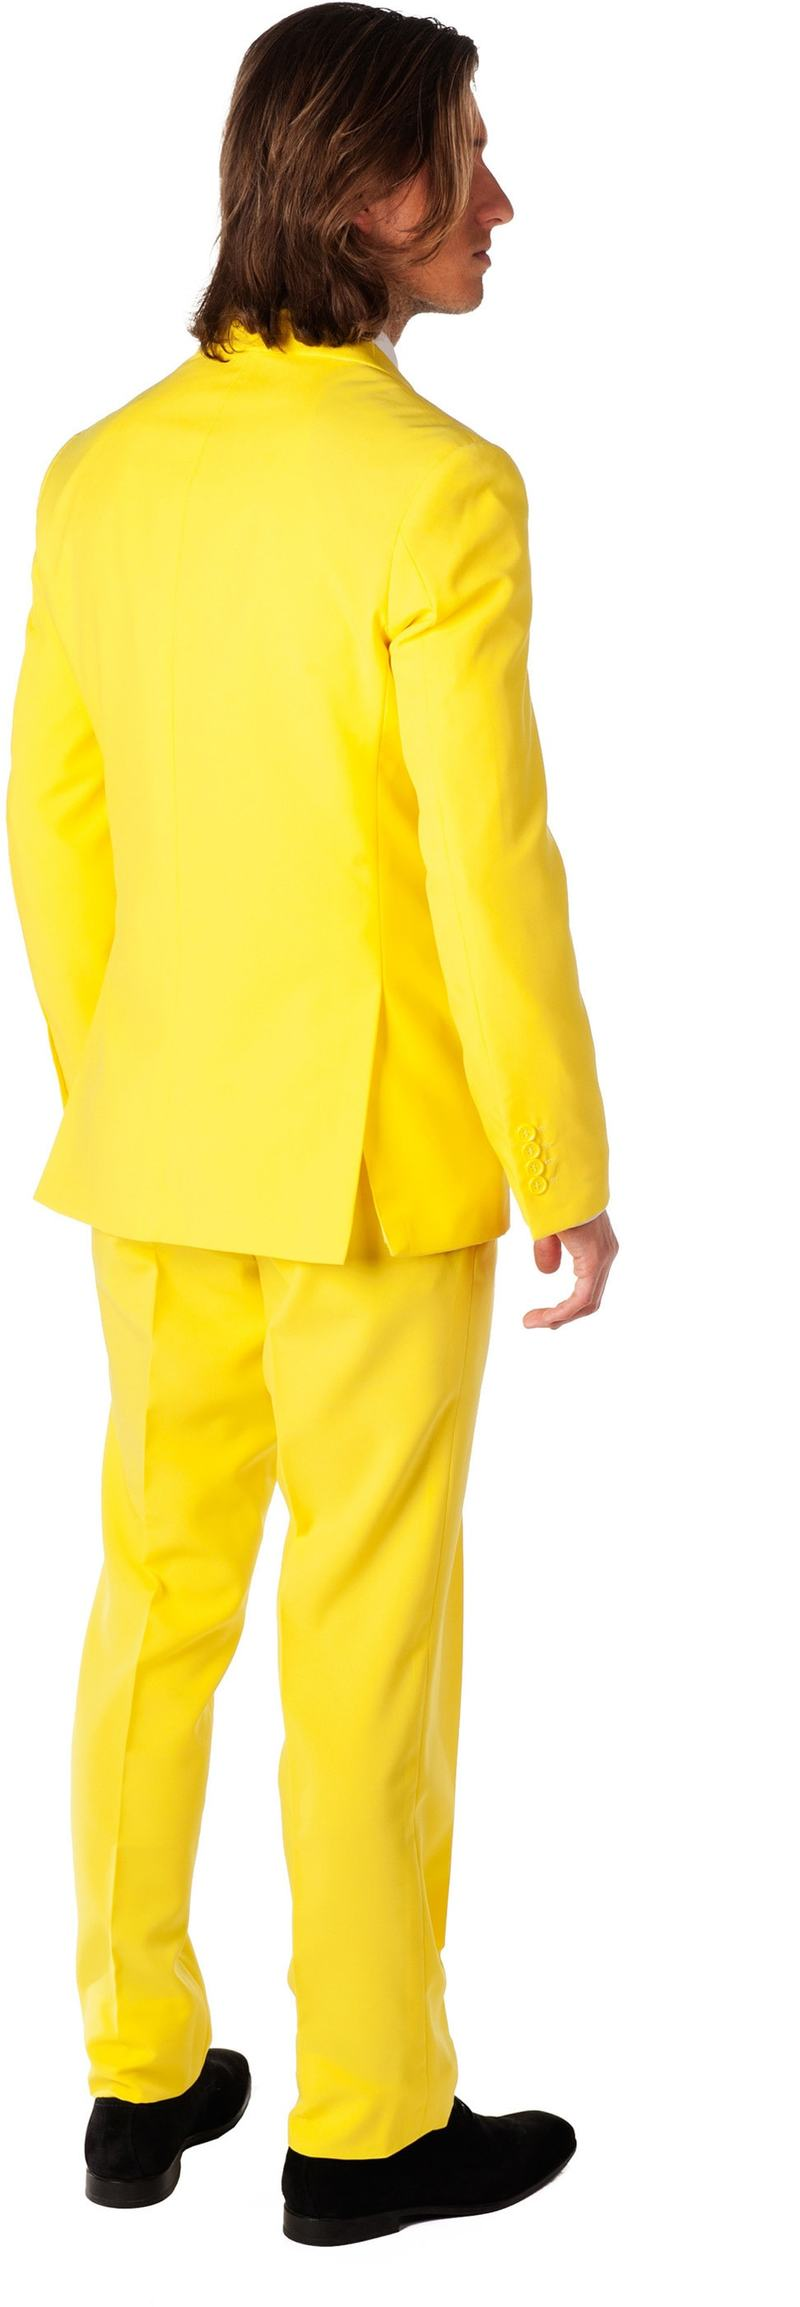 OppoSuits Yellow Fellow Kostuum foto 1